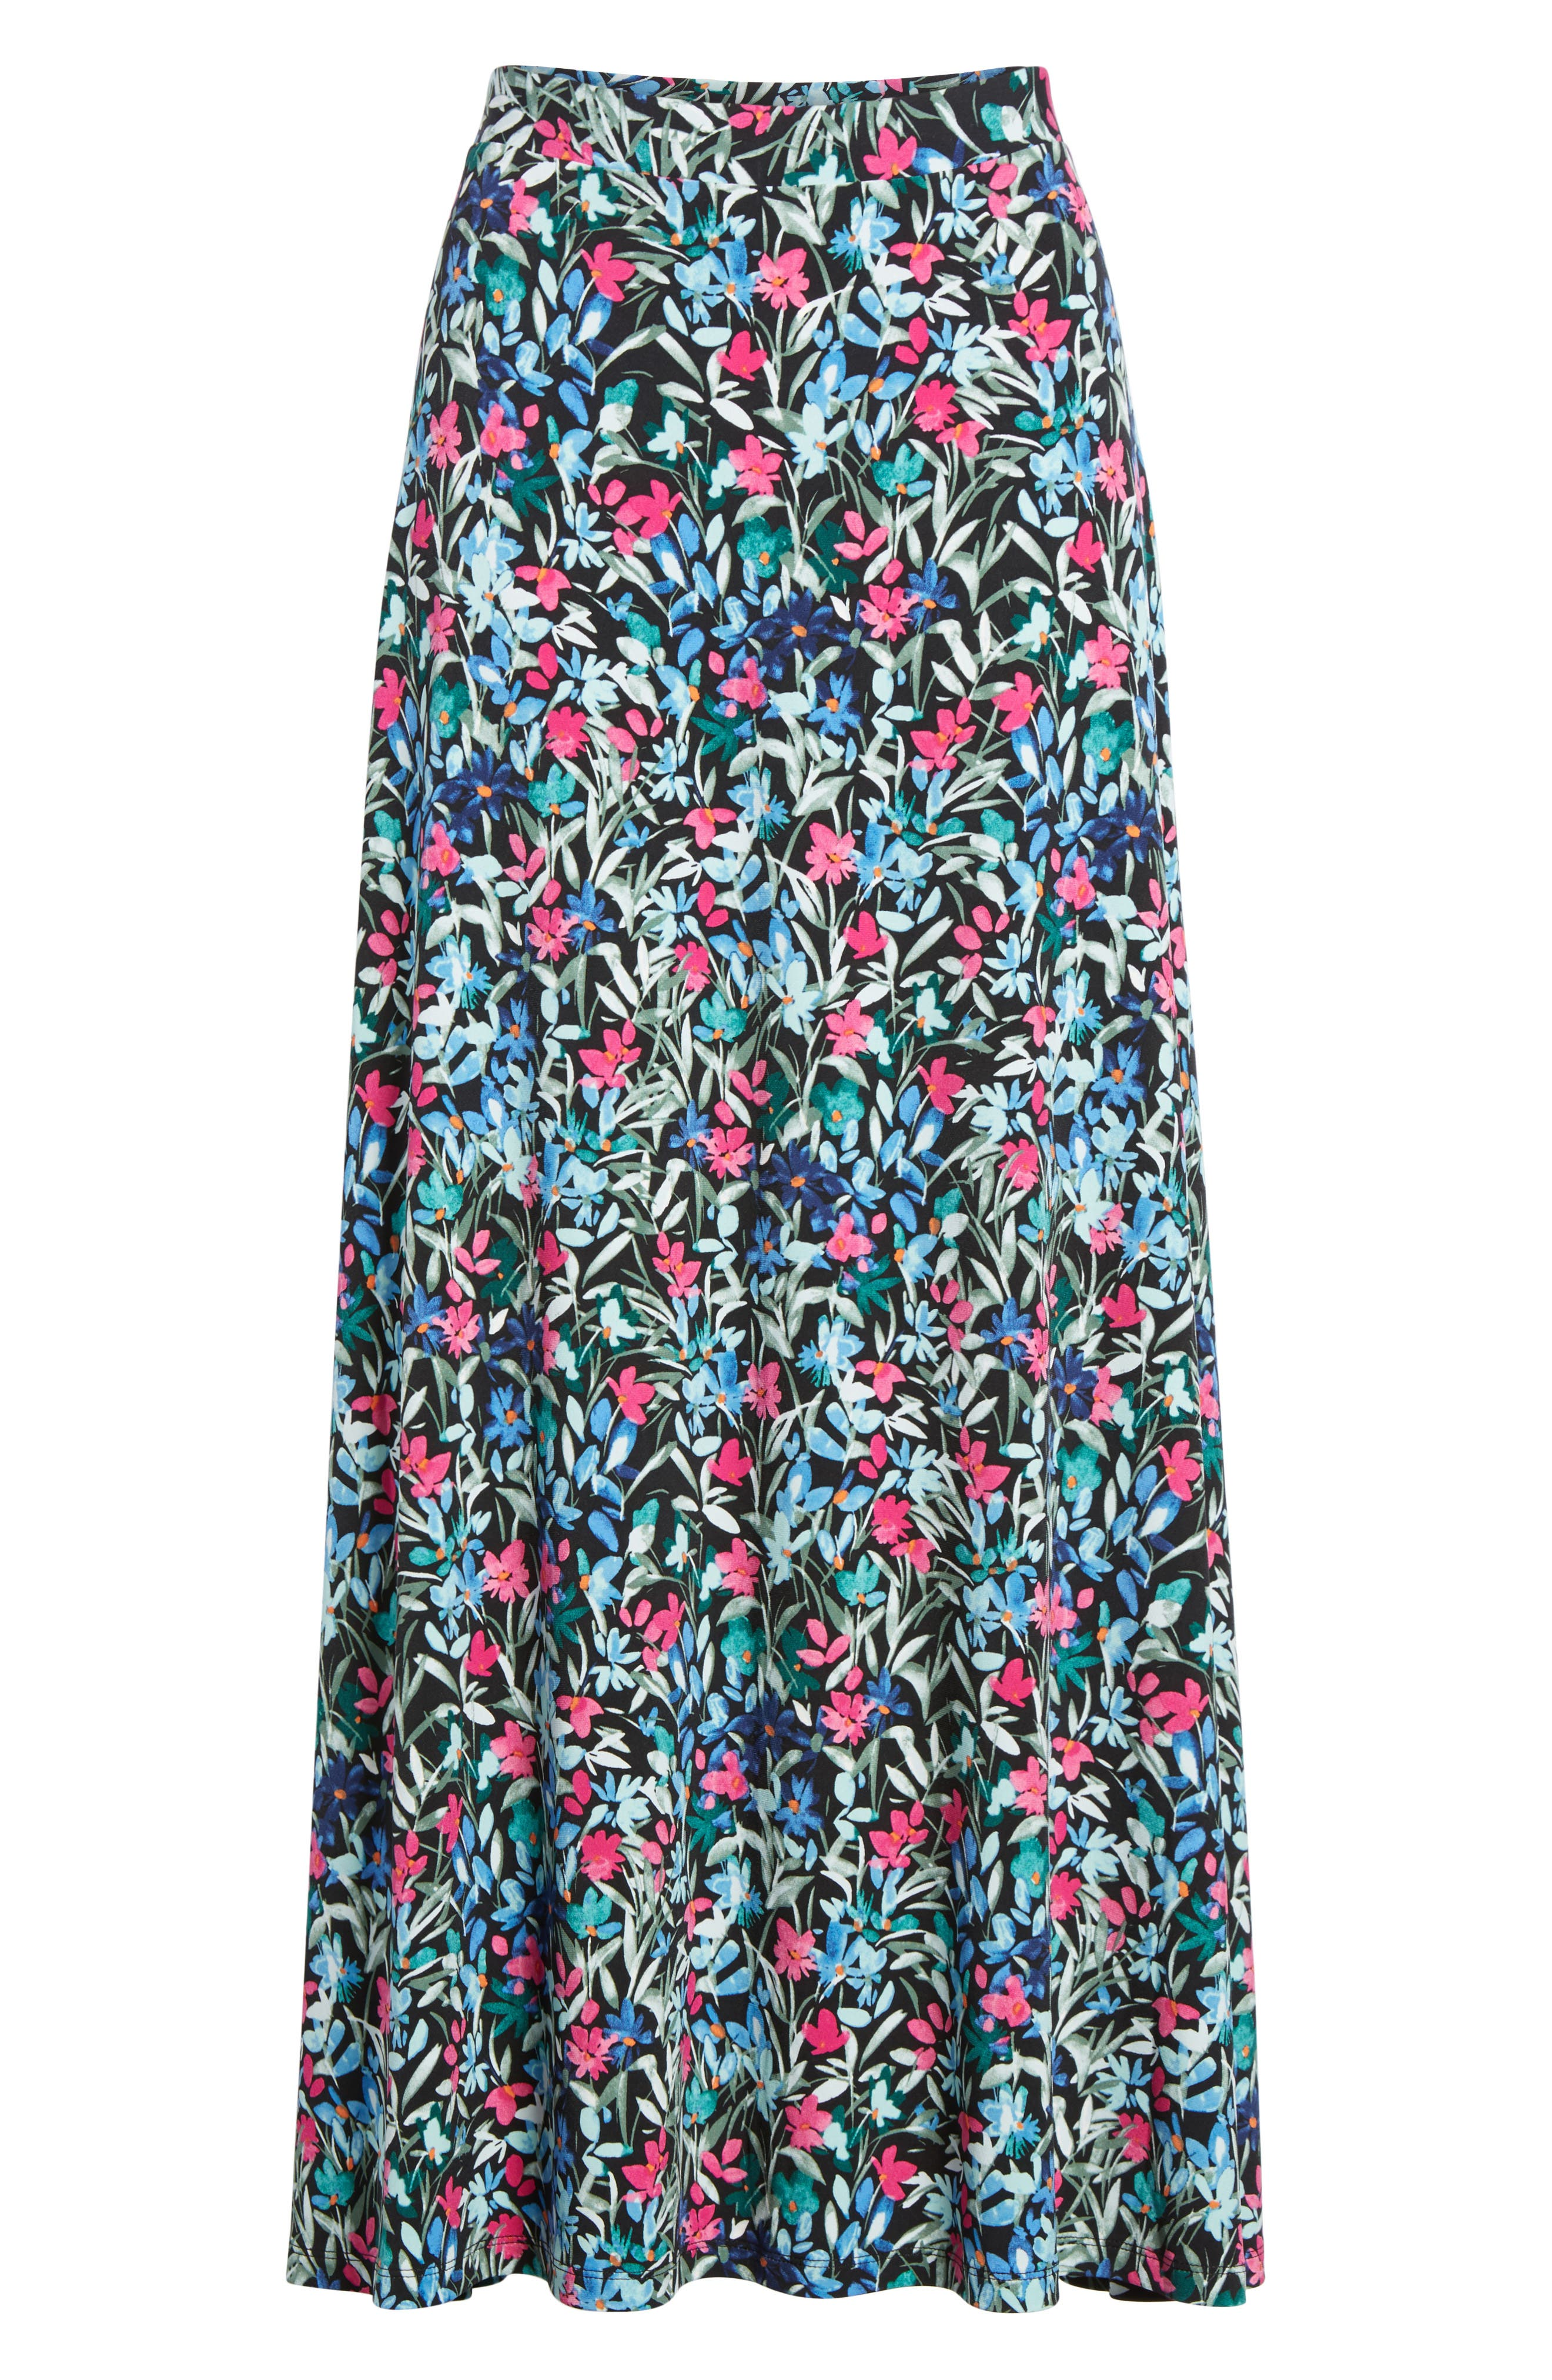 Radiant Flowers Maxi Skirt,                             Alternate thumbnail 6, color,